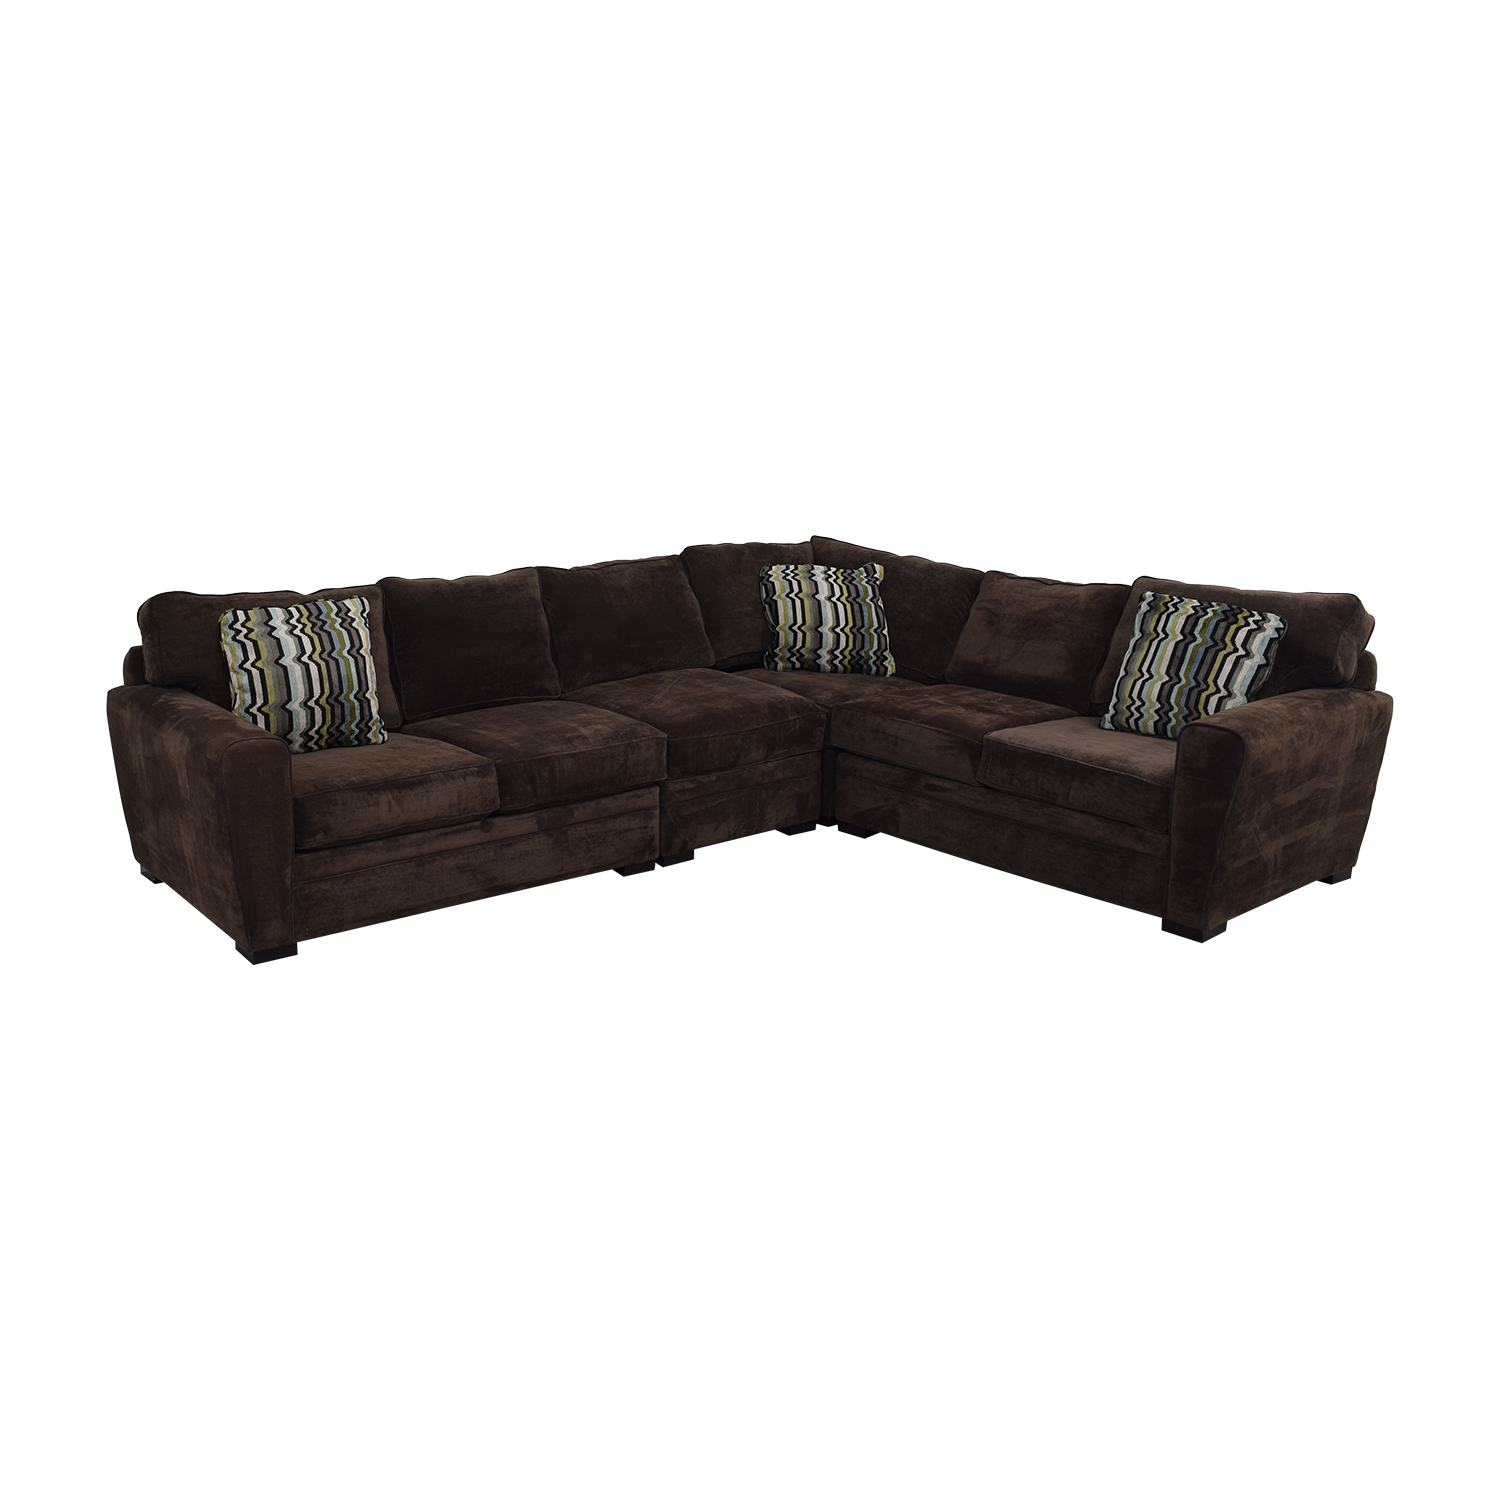 buy Raymour & Flanigan Raymour & Flanigan Brown Velvet L-Shaped Sectional online